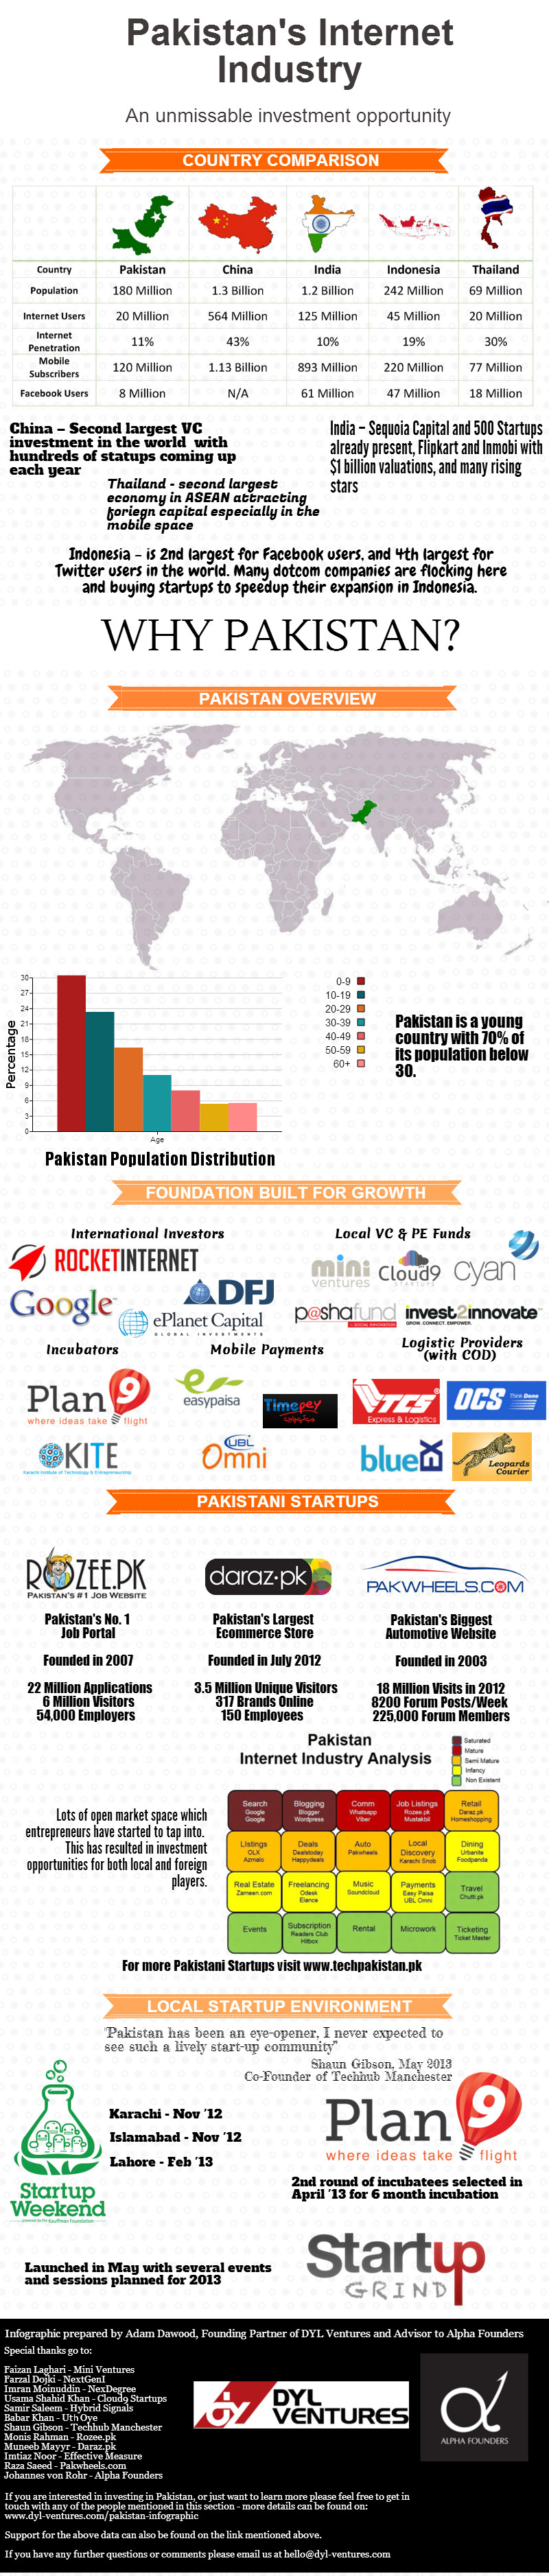 Pakistan's startup ecosystem in 2013